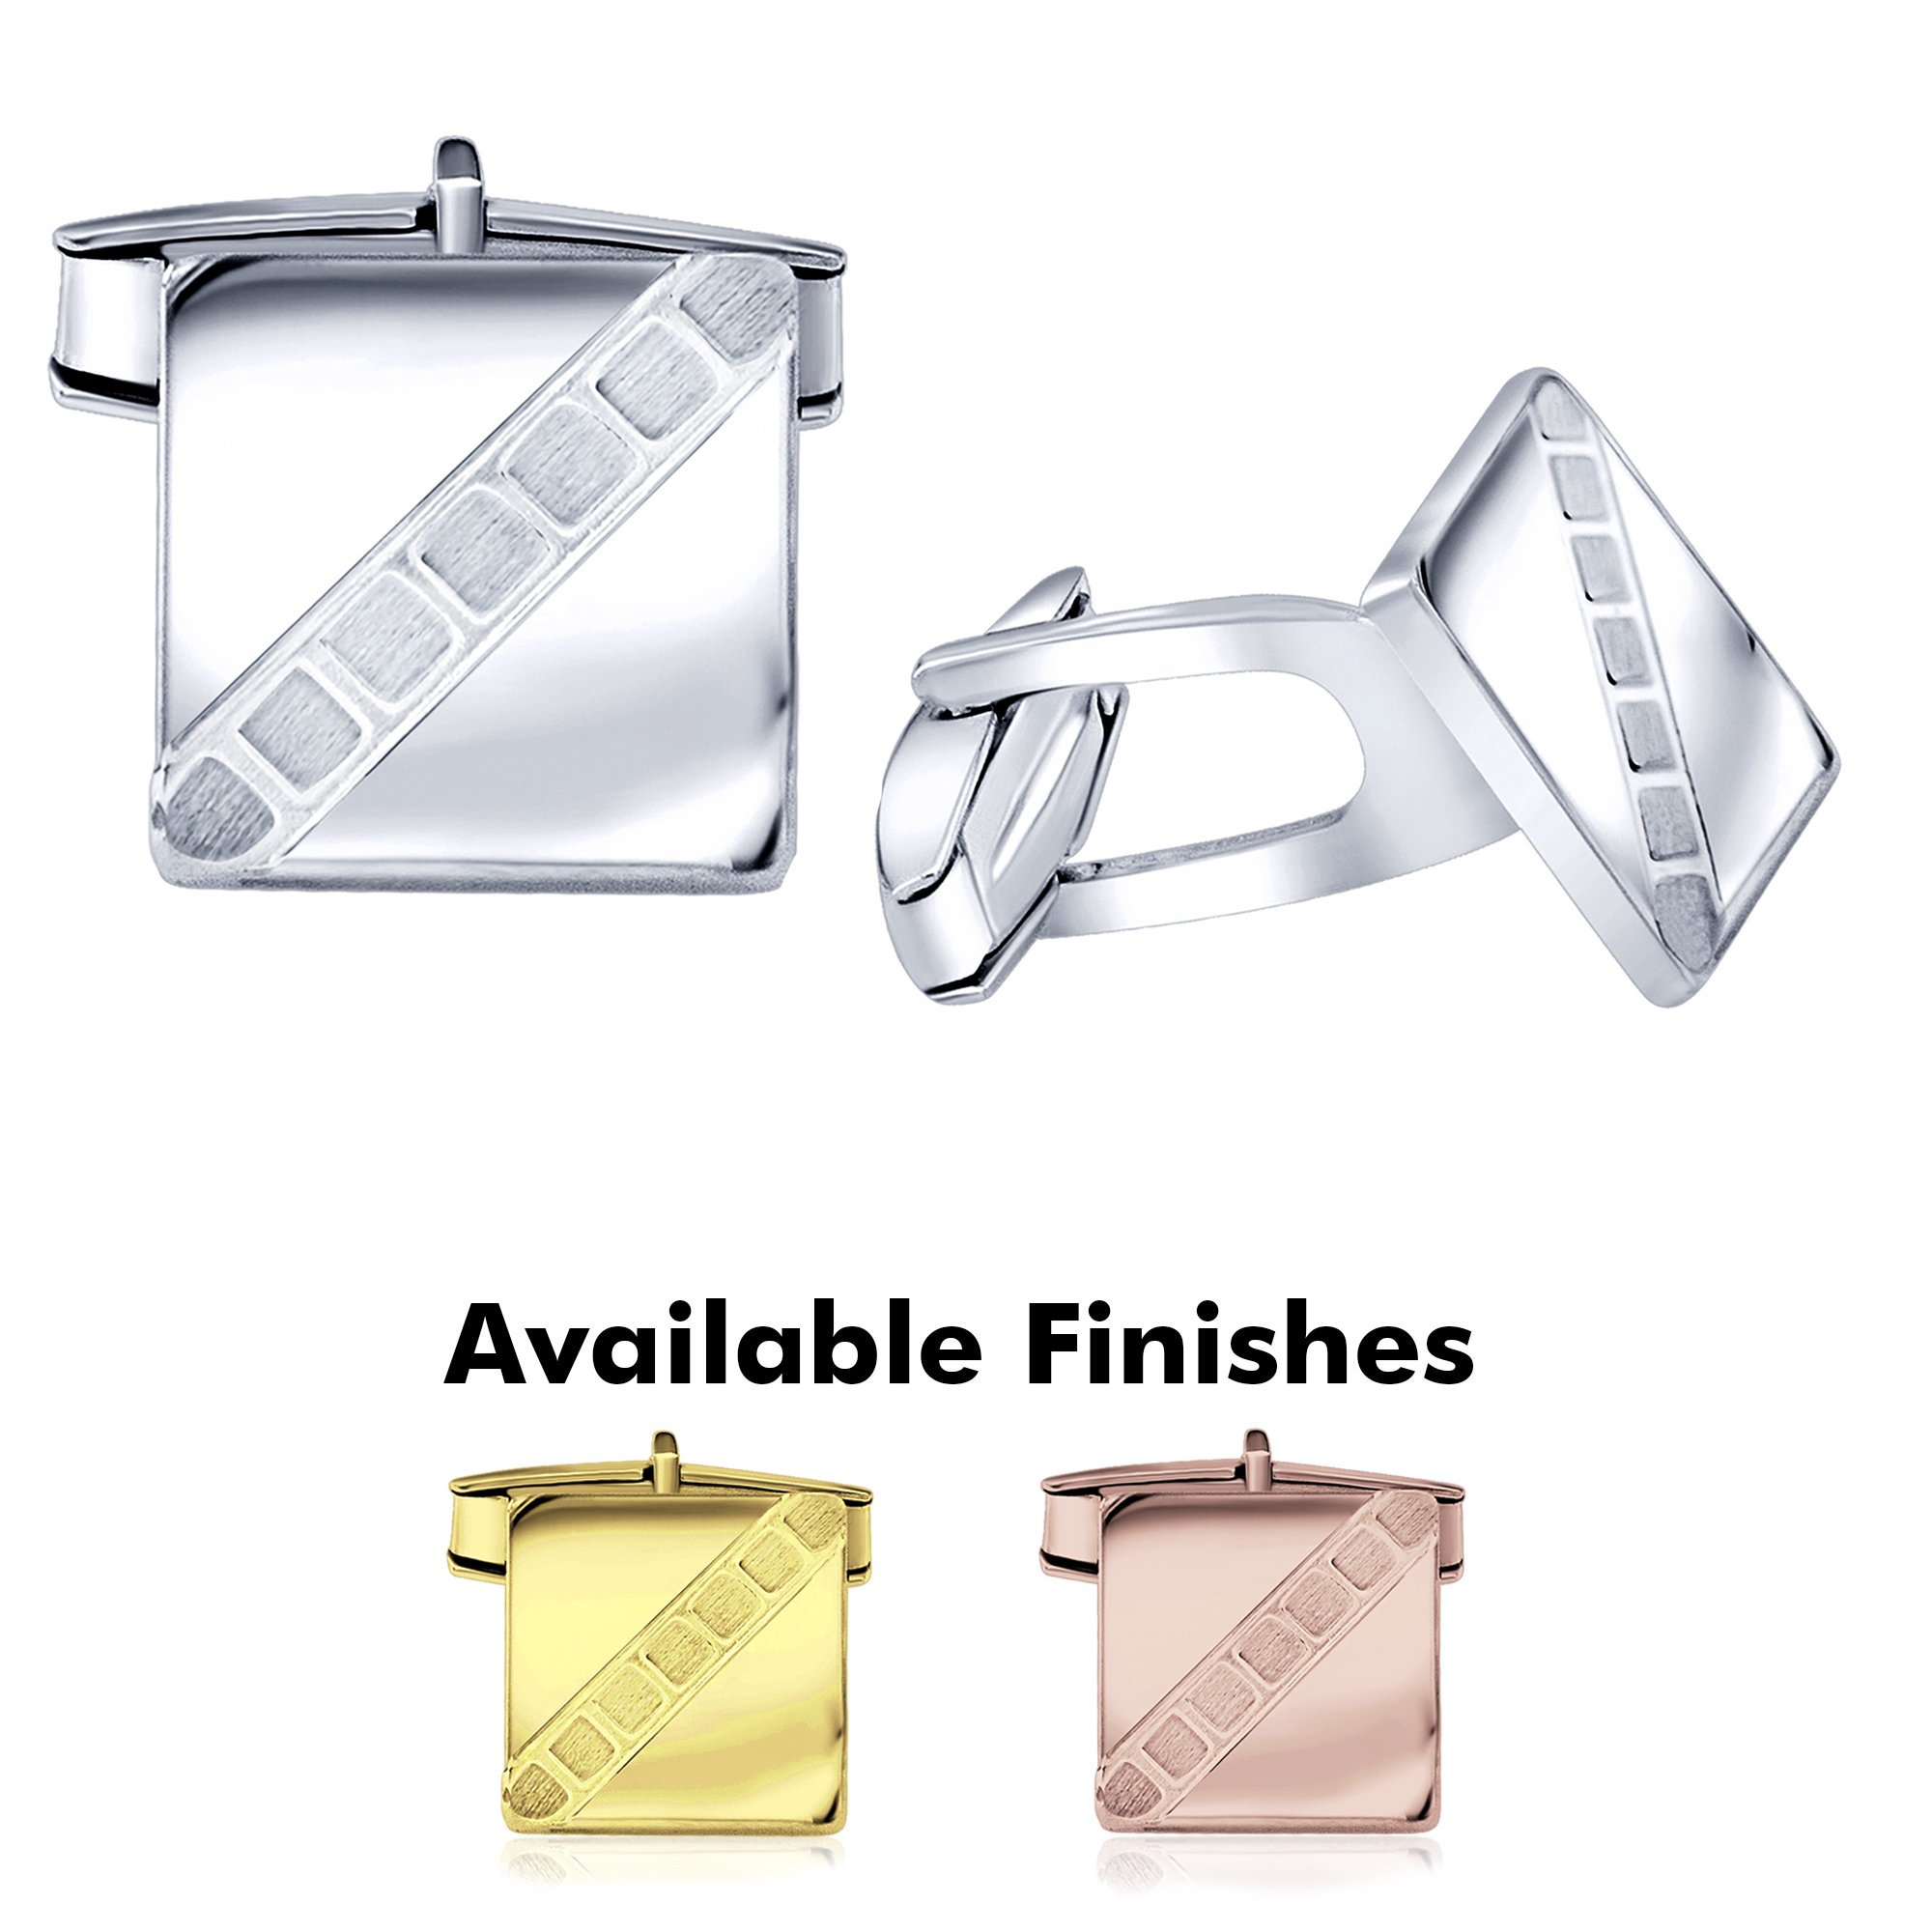 Sterling Manufacturers Men's Sterling Silver .925 Square Cufflinks with Satin Finish Check Accents, Engravable, 14mm. By by Sterling Manufacturers (Image #1)